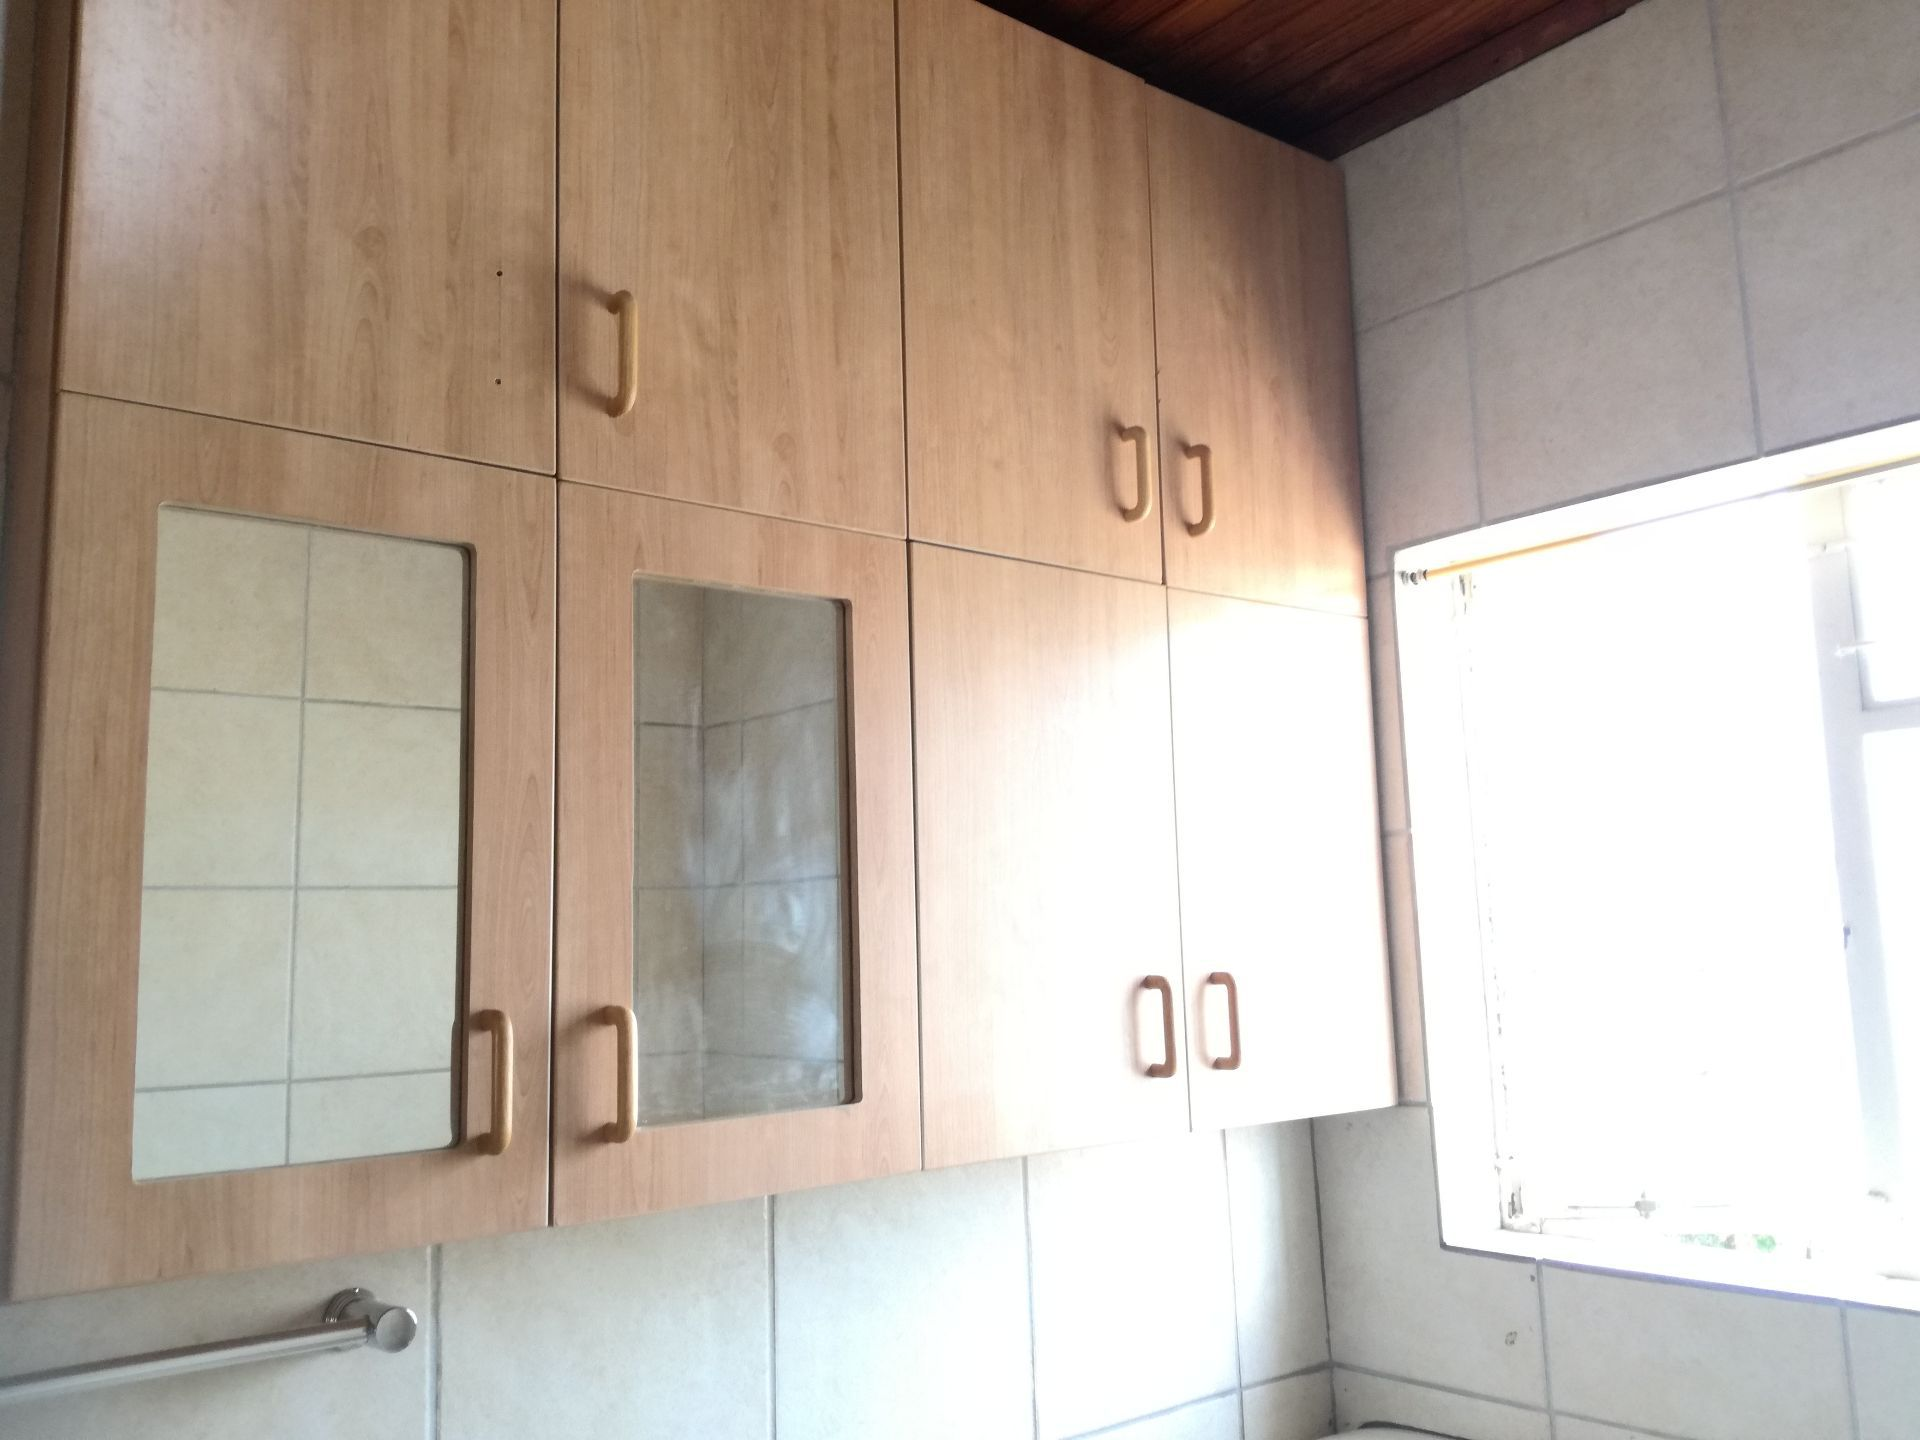 House in Central - Bathroom cuboards